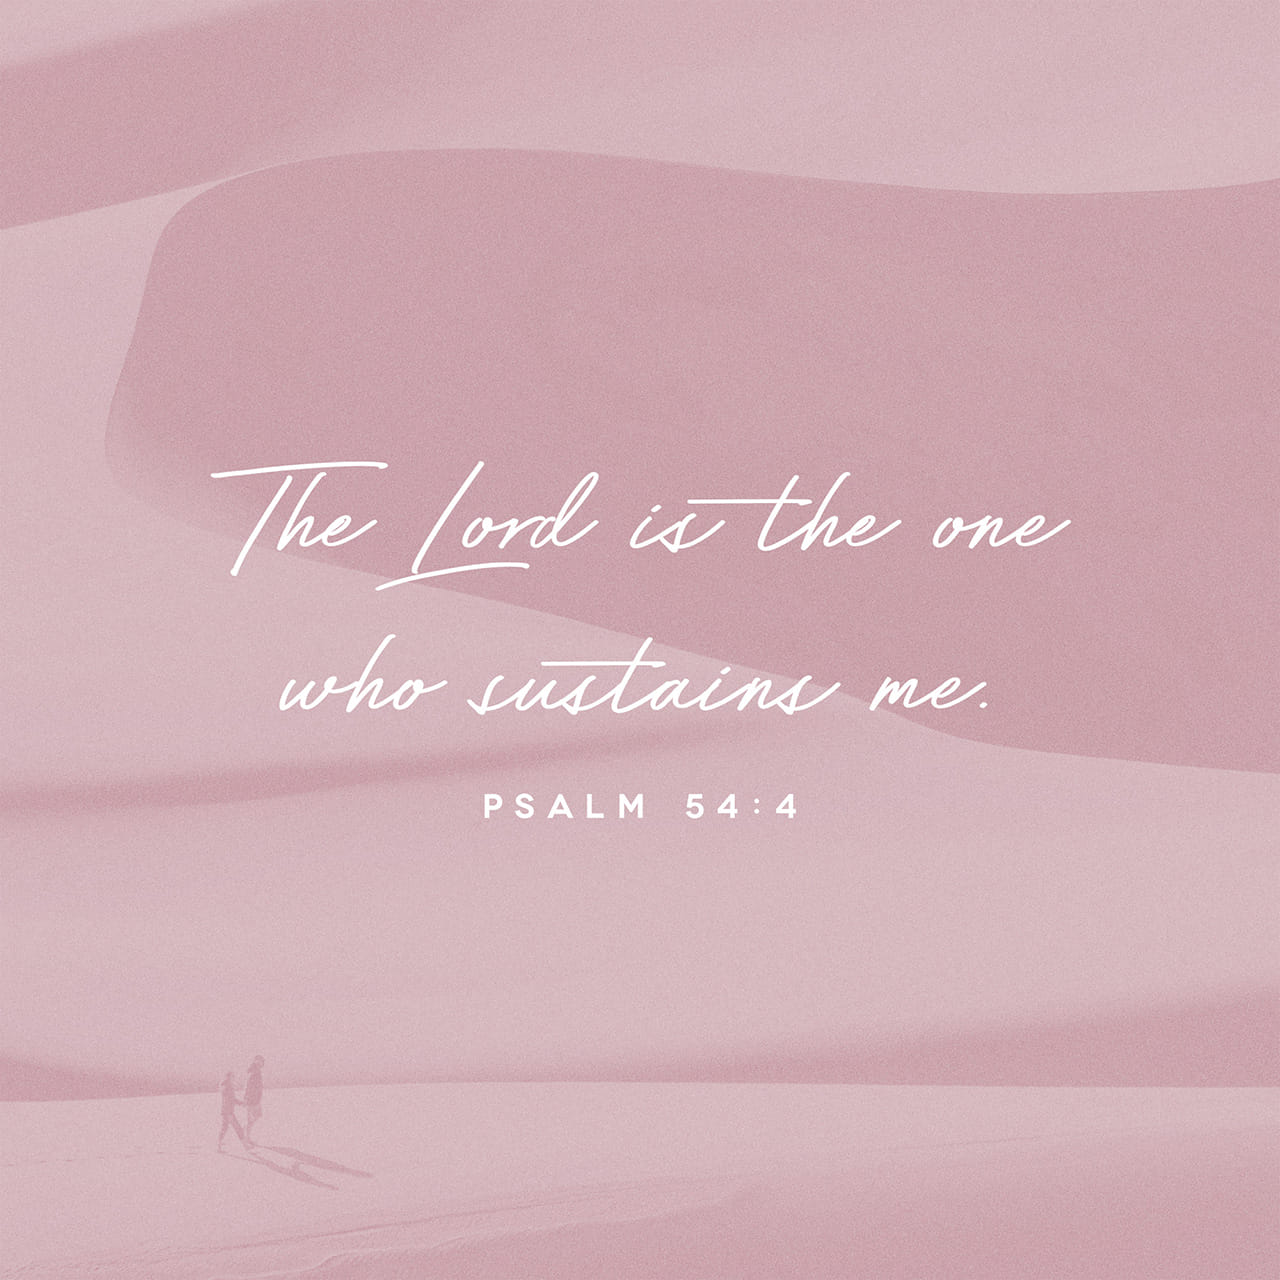 Psalm 54:4 Surely God is my help; the Lord is the one who sustains me. | New International Version (NIV)